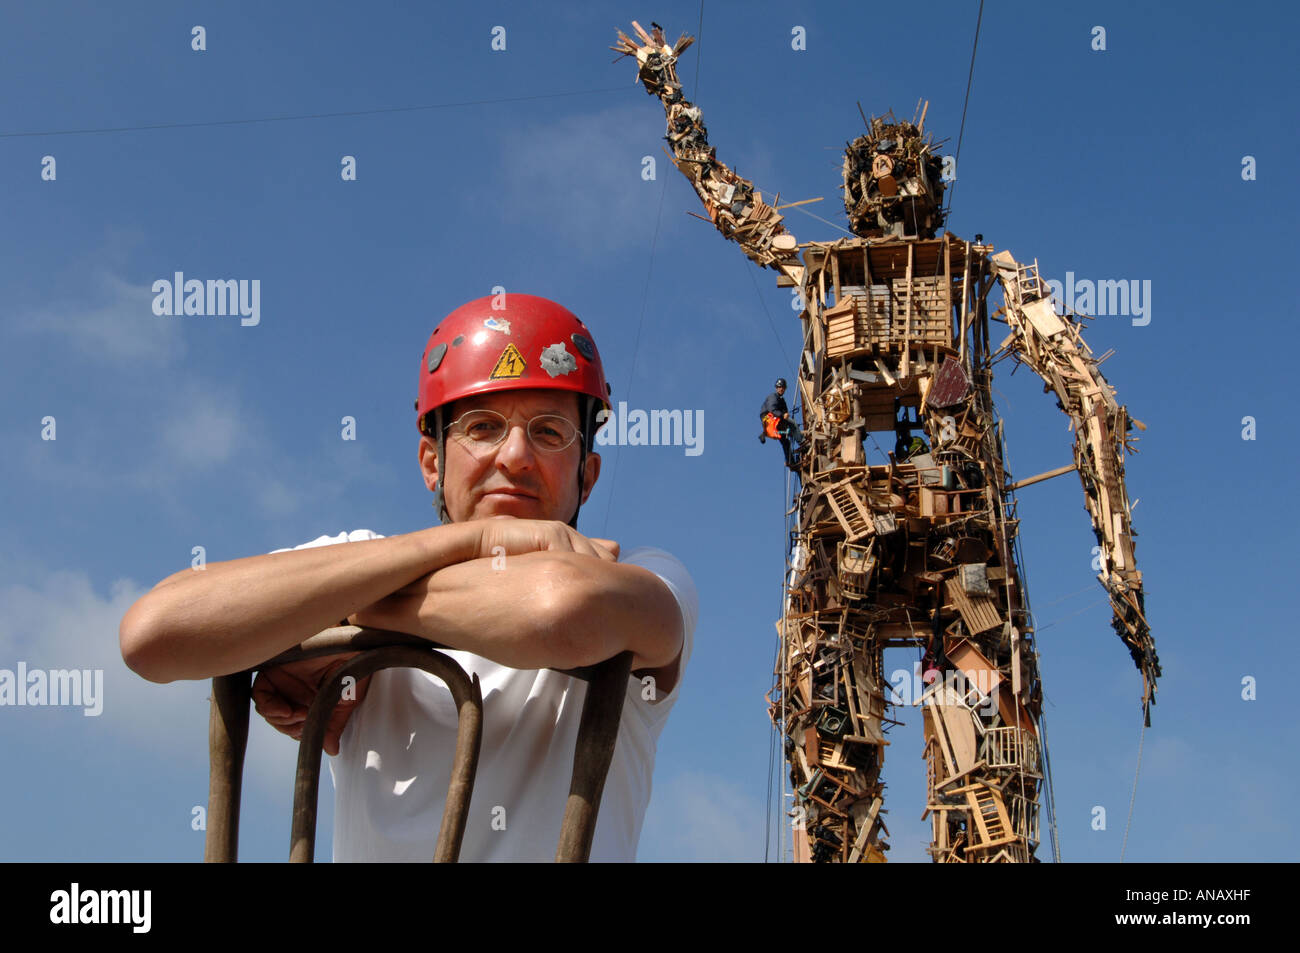 Sculptor Antony Gormley with his 75ft tall creation Wasteman made entirely of recyled rubbish. - Stock Image